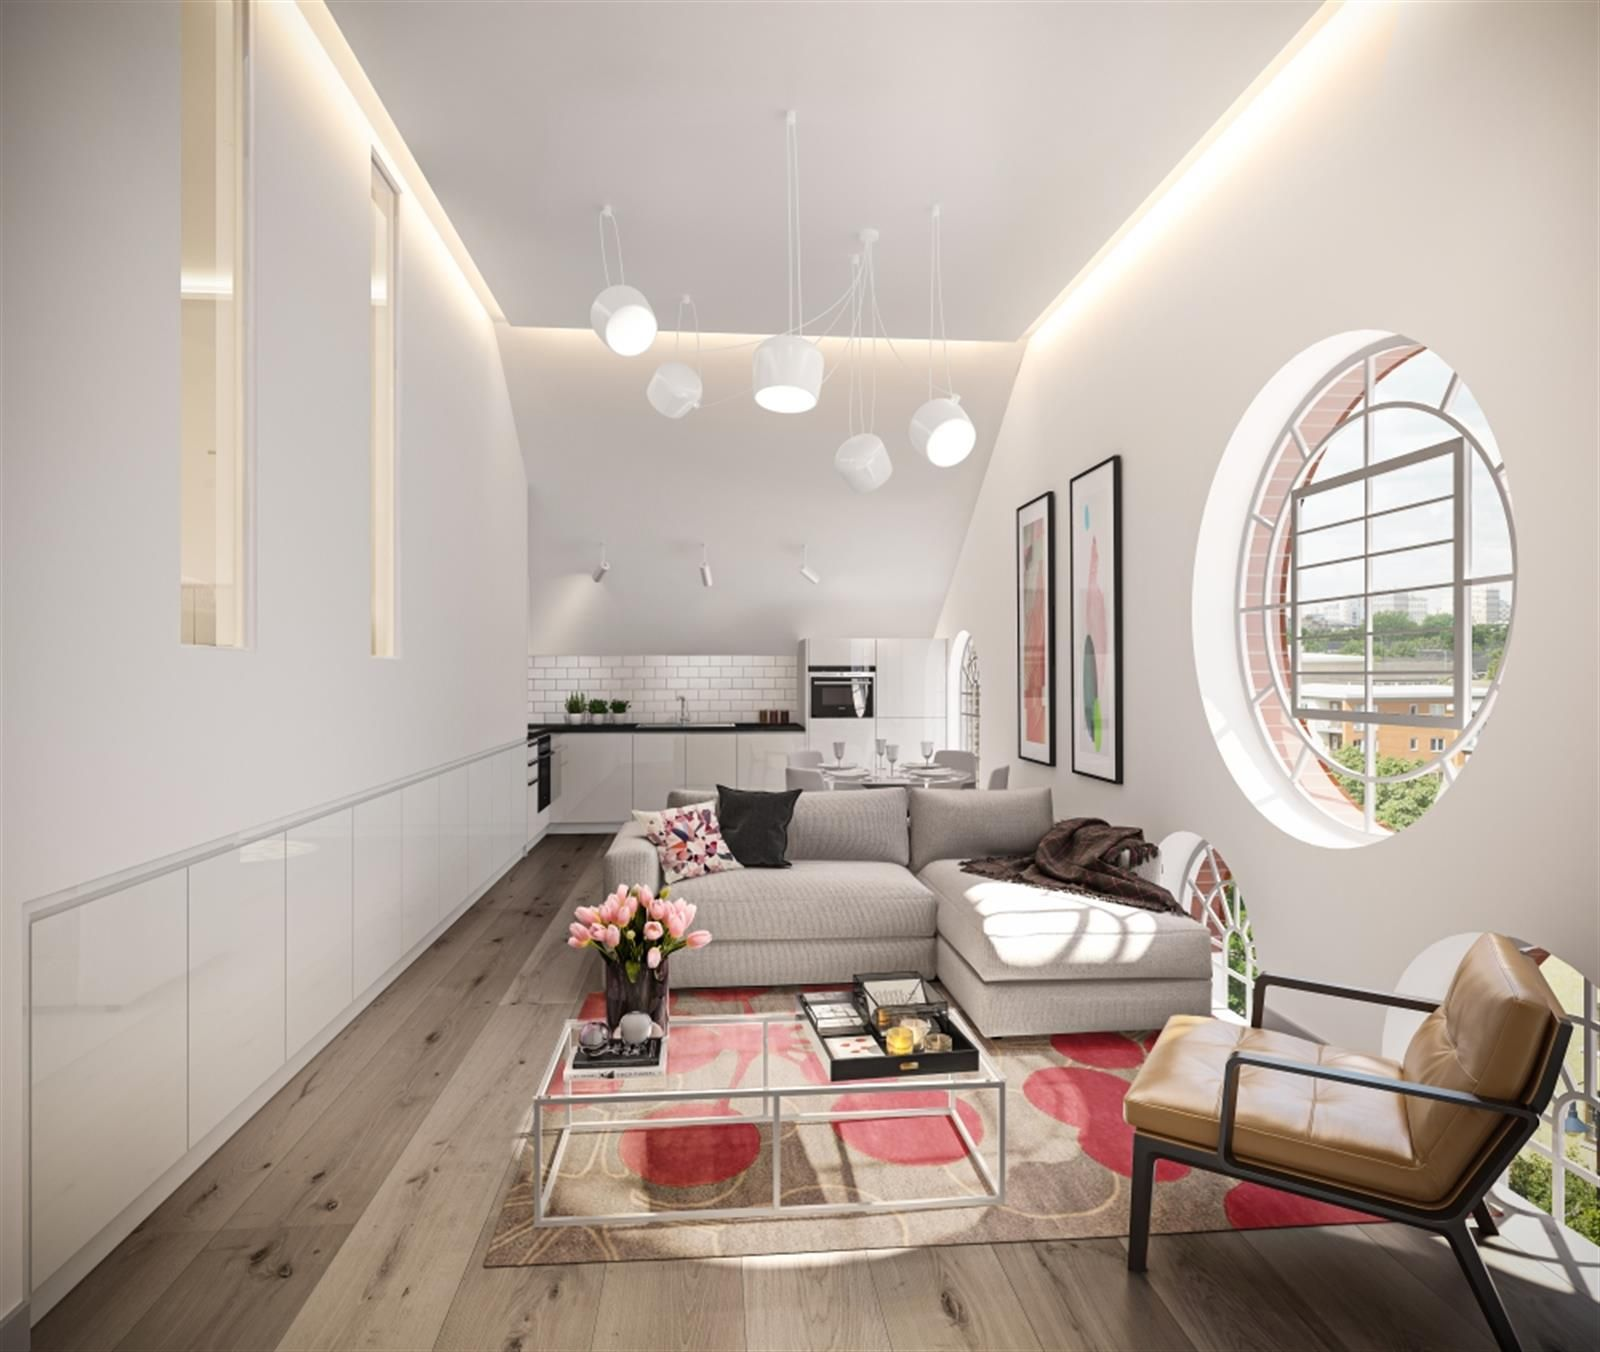 Living Room Lighting Design Aim Pendant From Flos Lights Look Great In This Apartment In